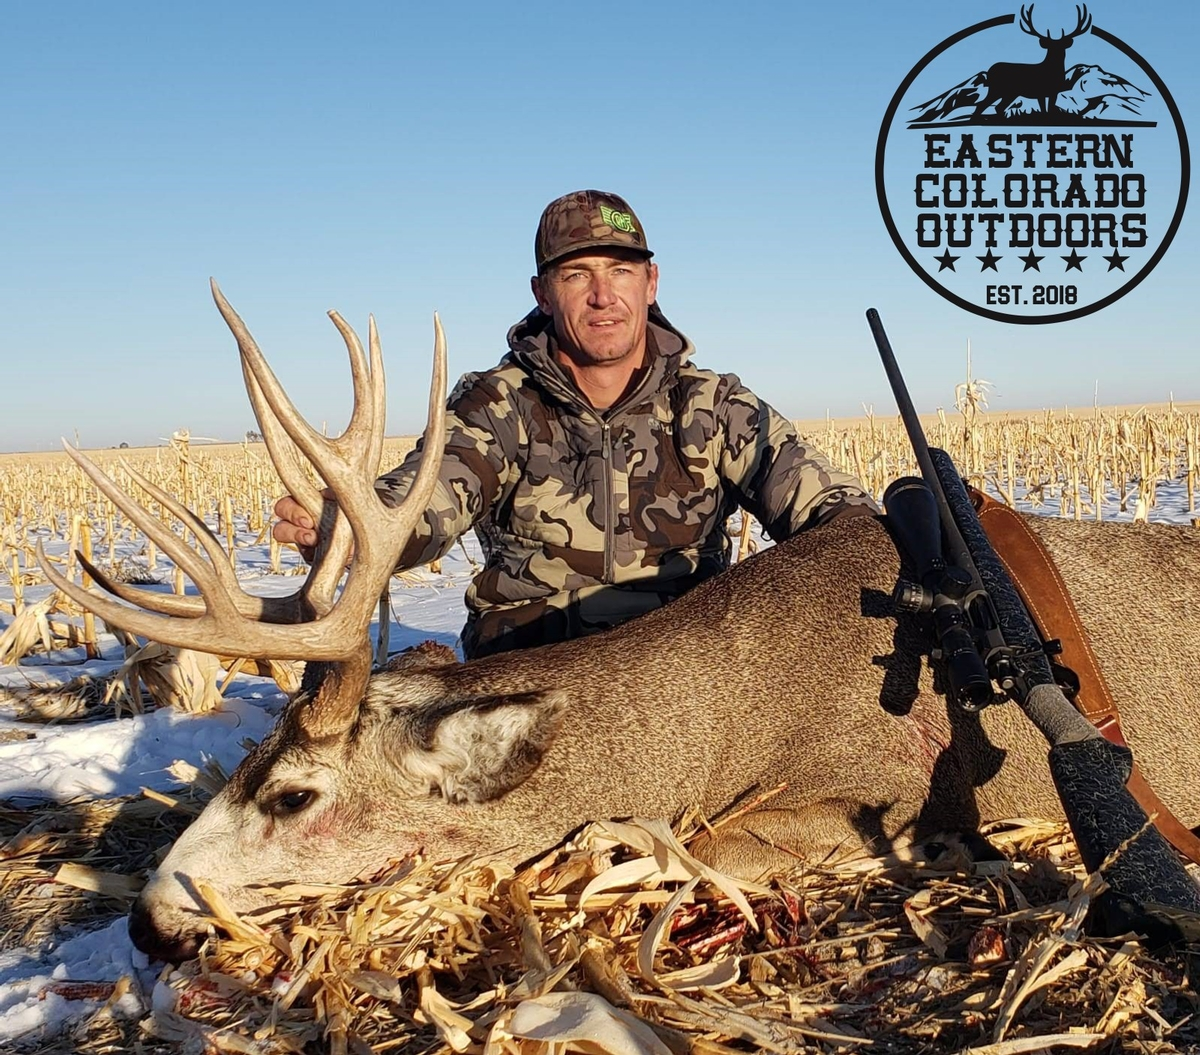 World Class Outfitting in Eastern Colorado